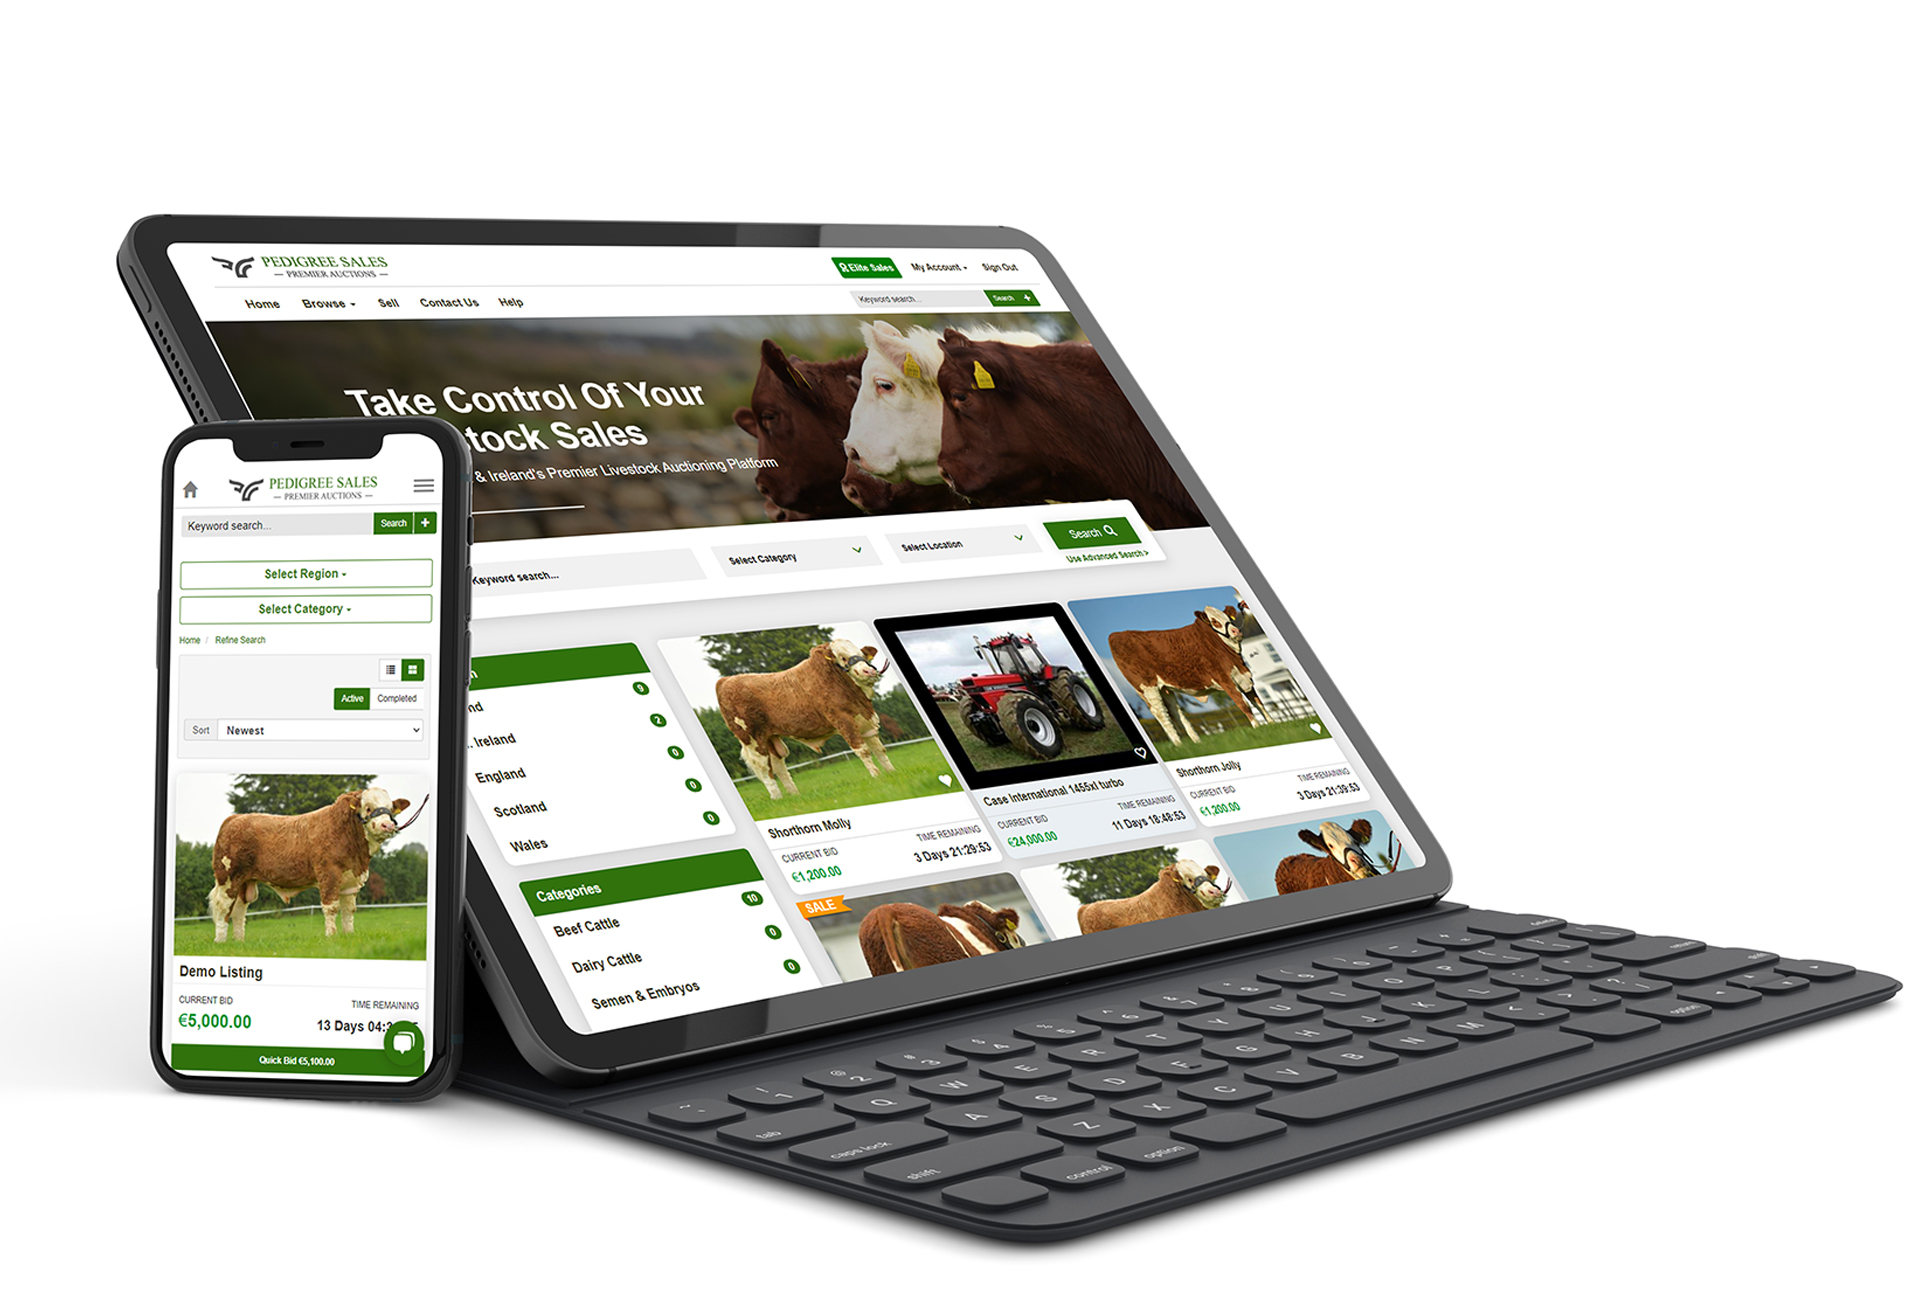 mobile-livestock-auctions-1